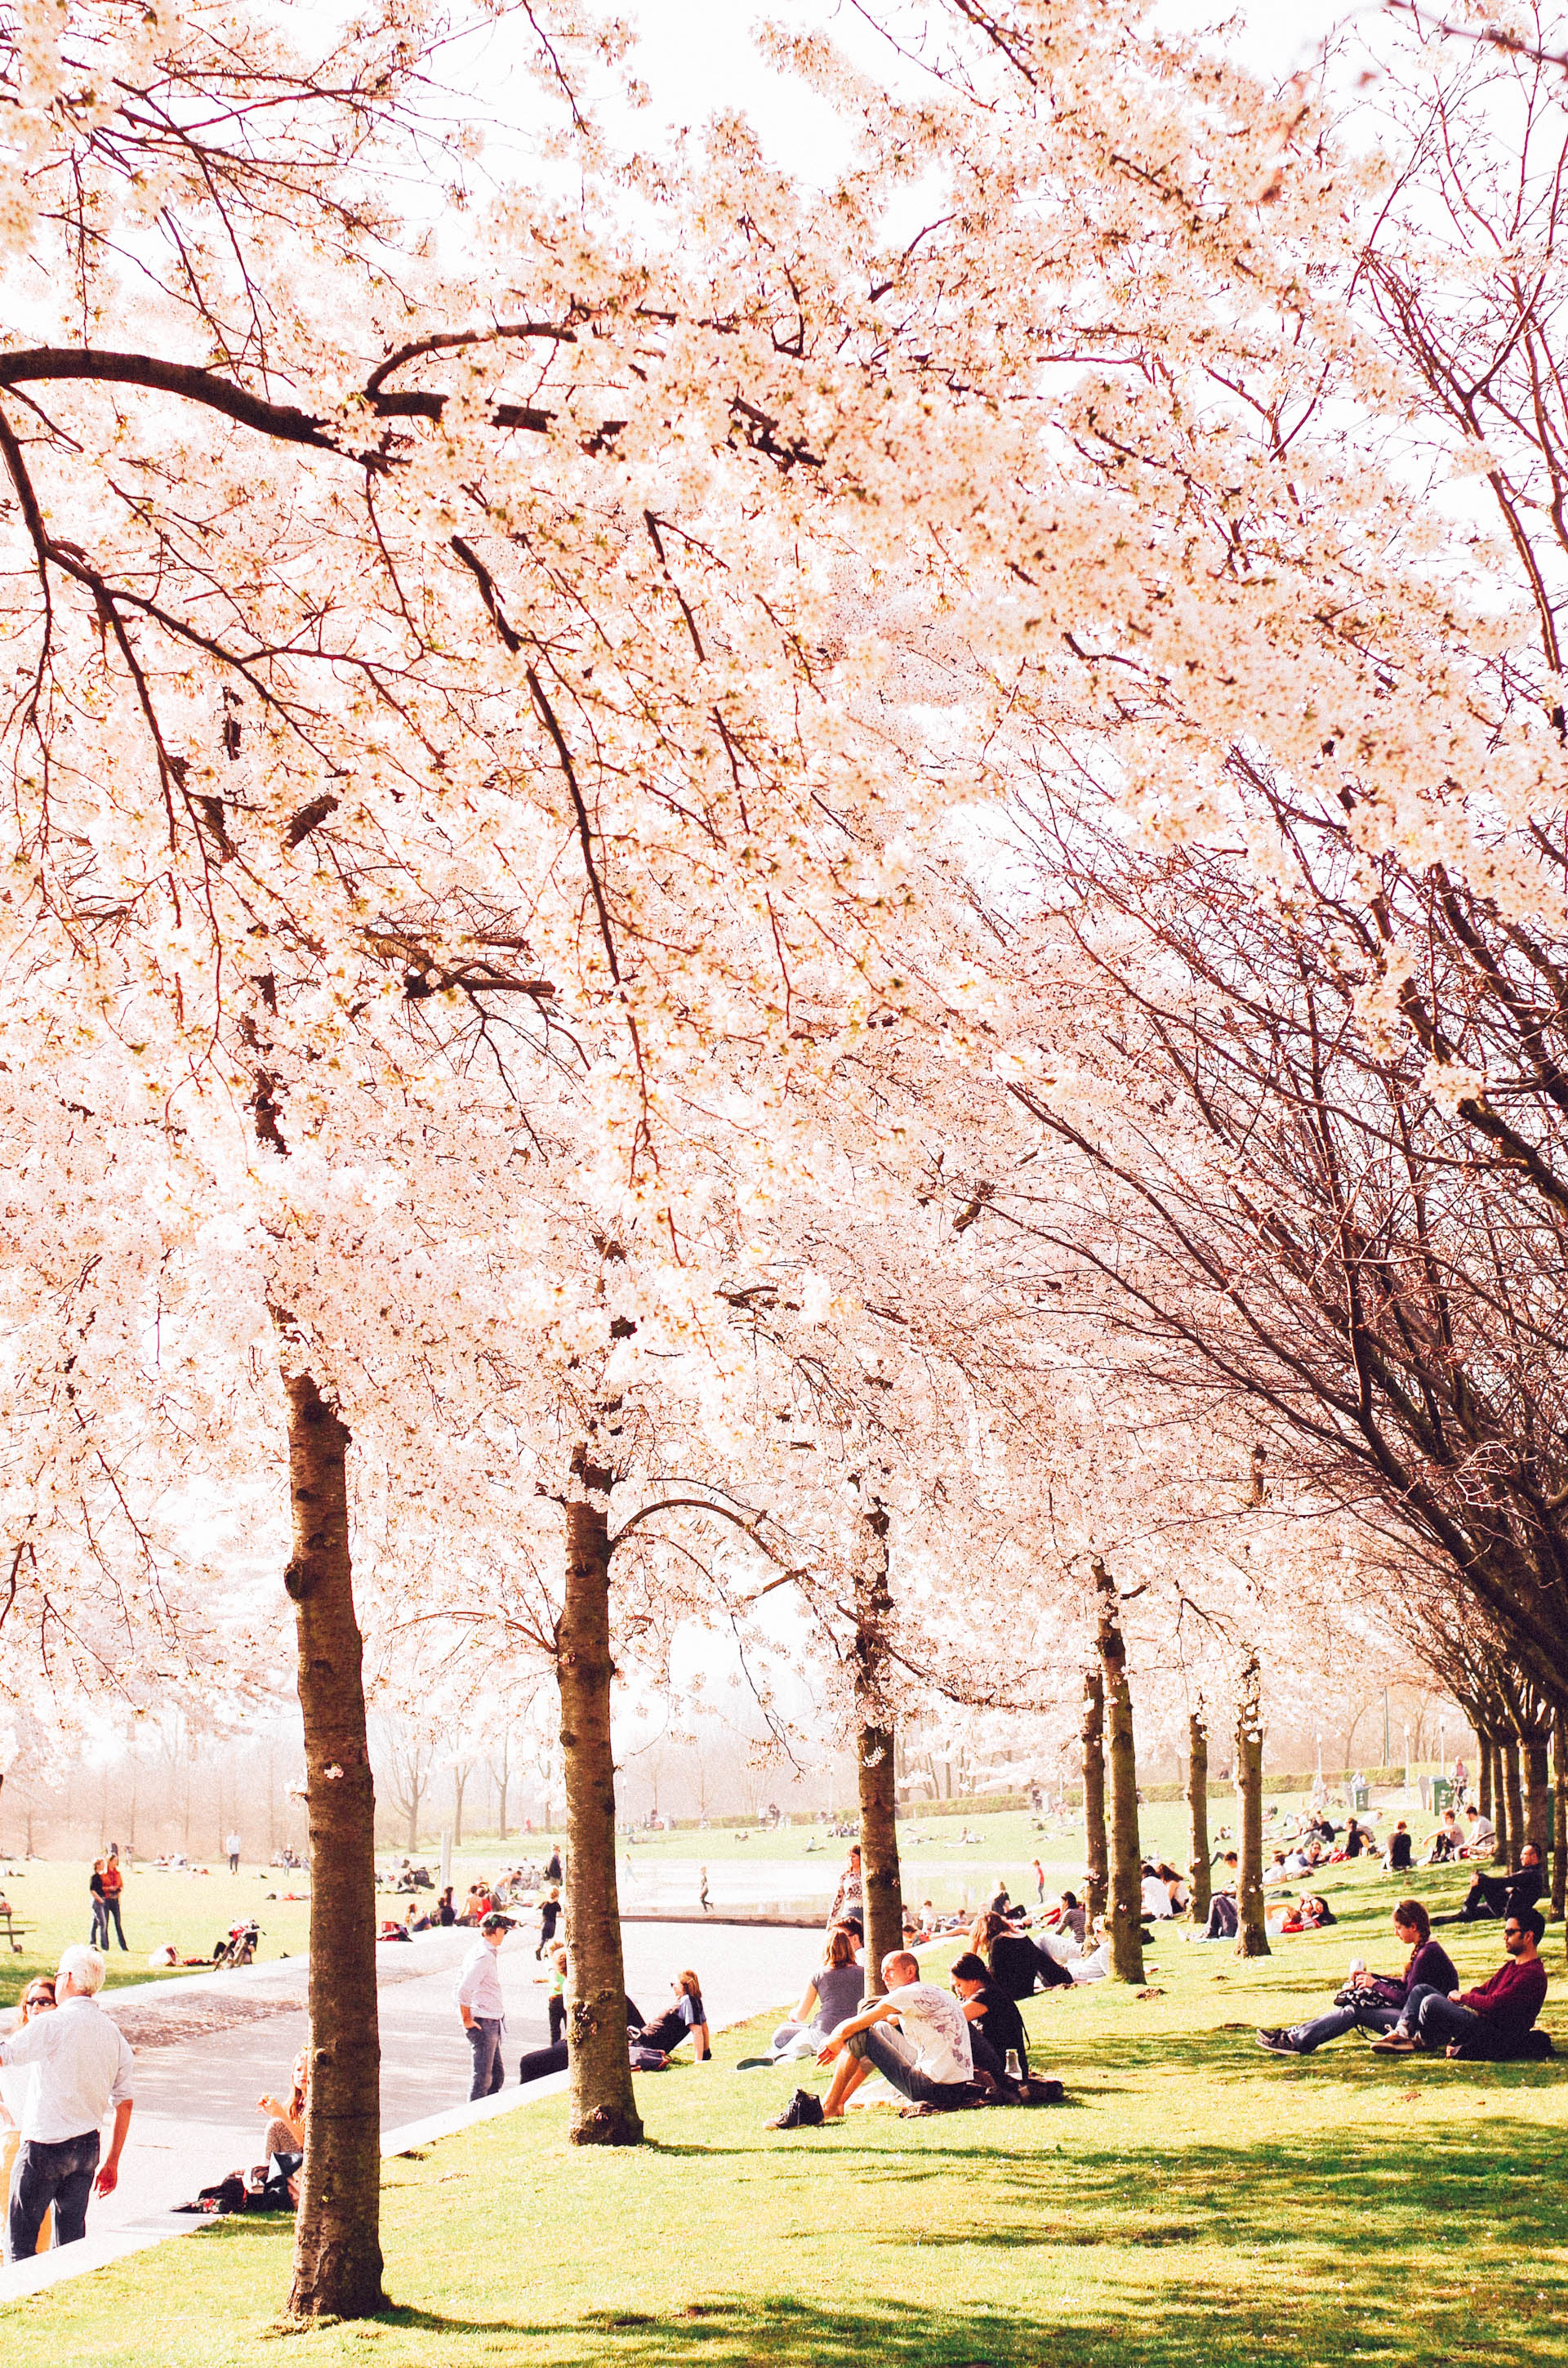 Amsterdam, Cherry Blossom in Westerpark